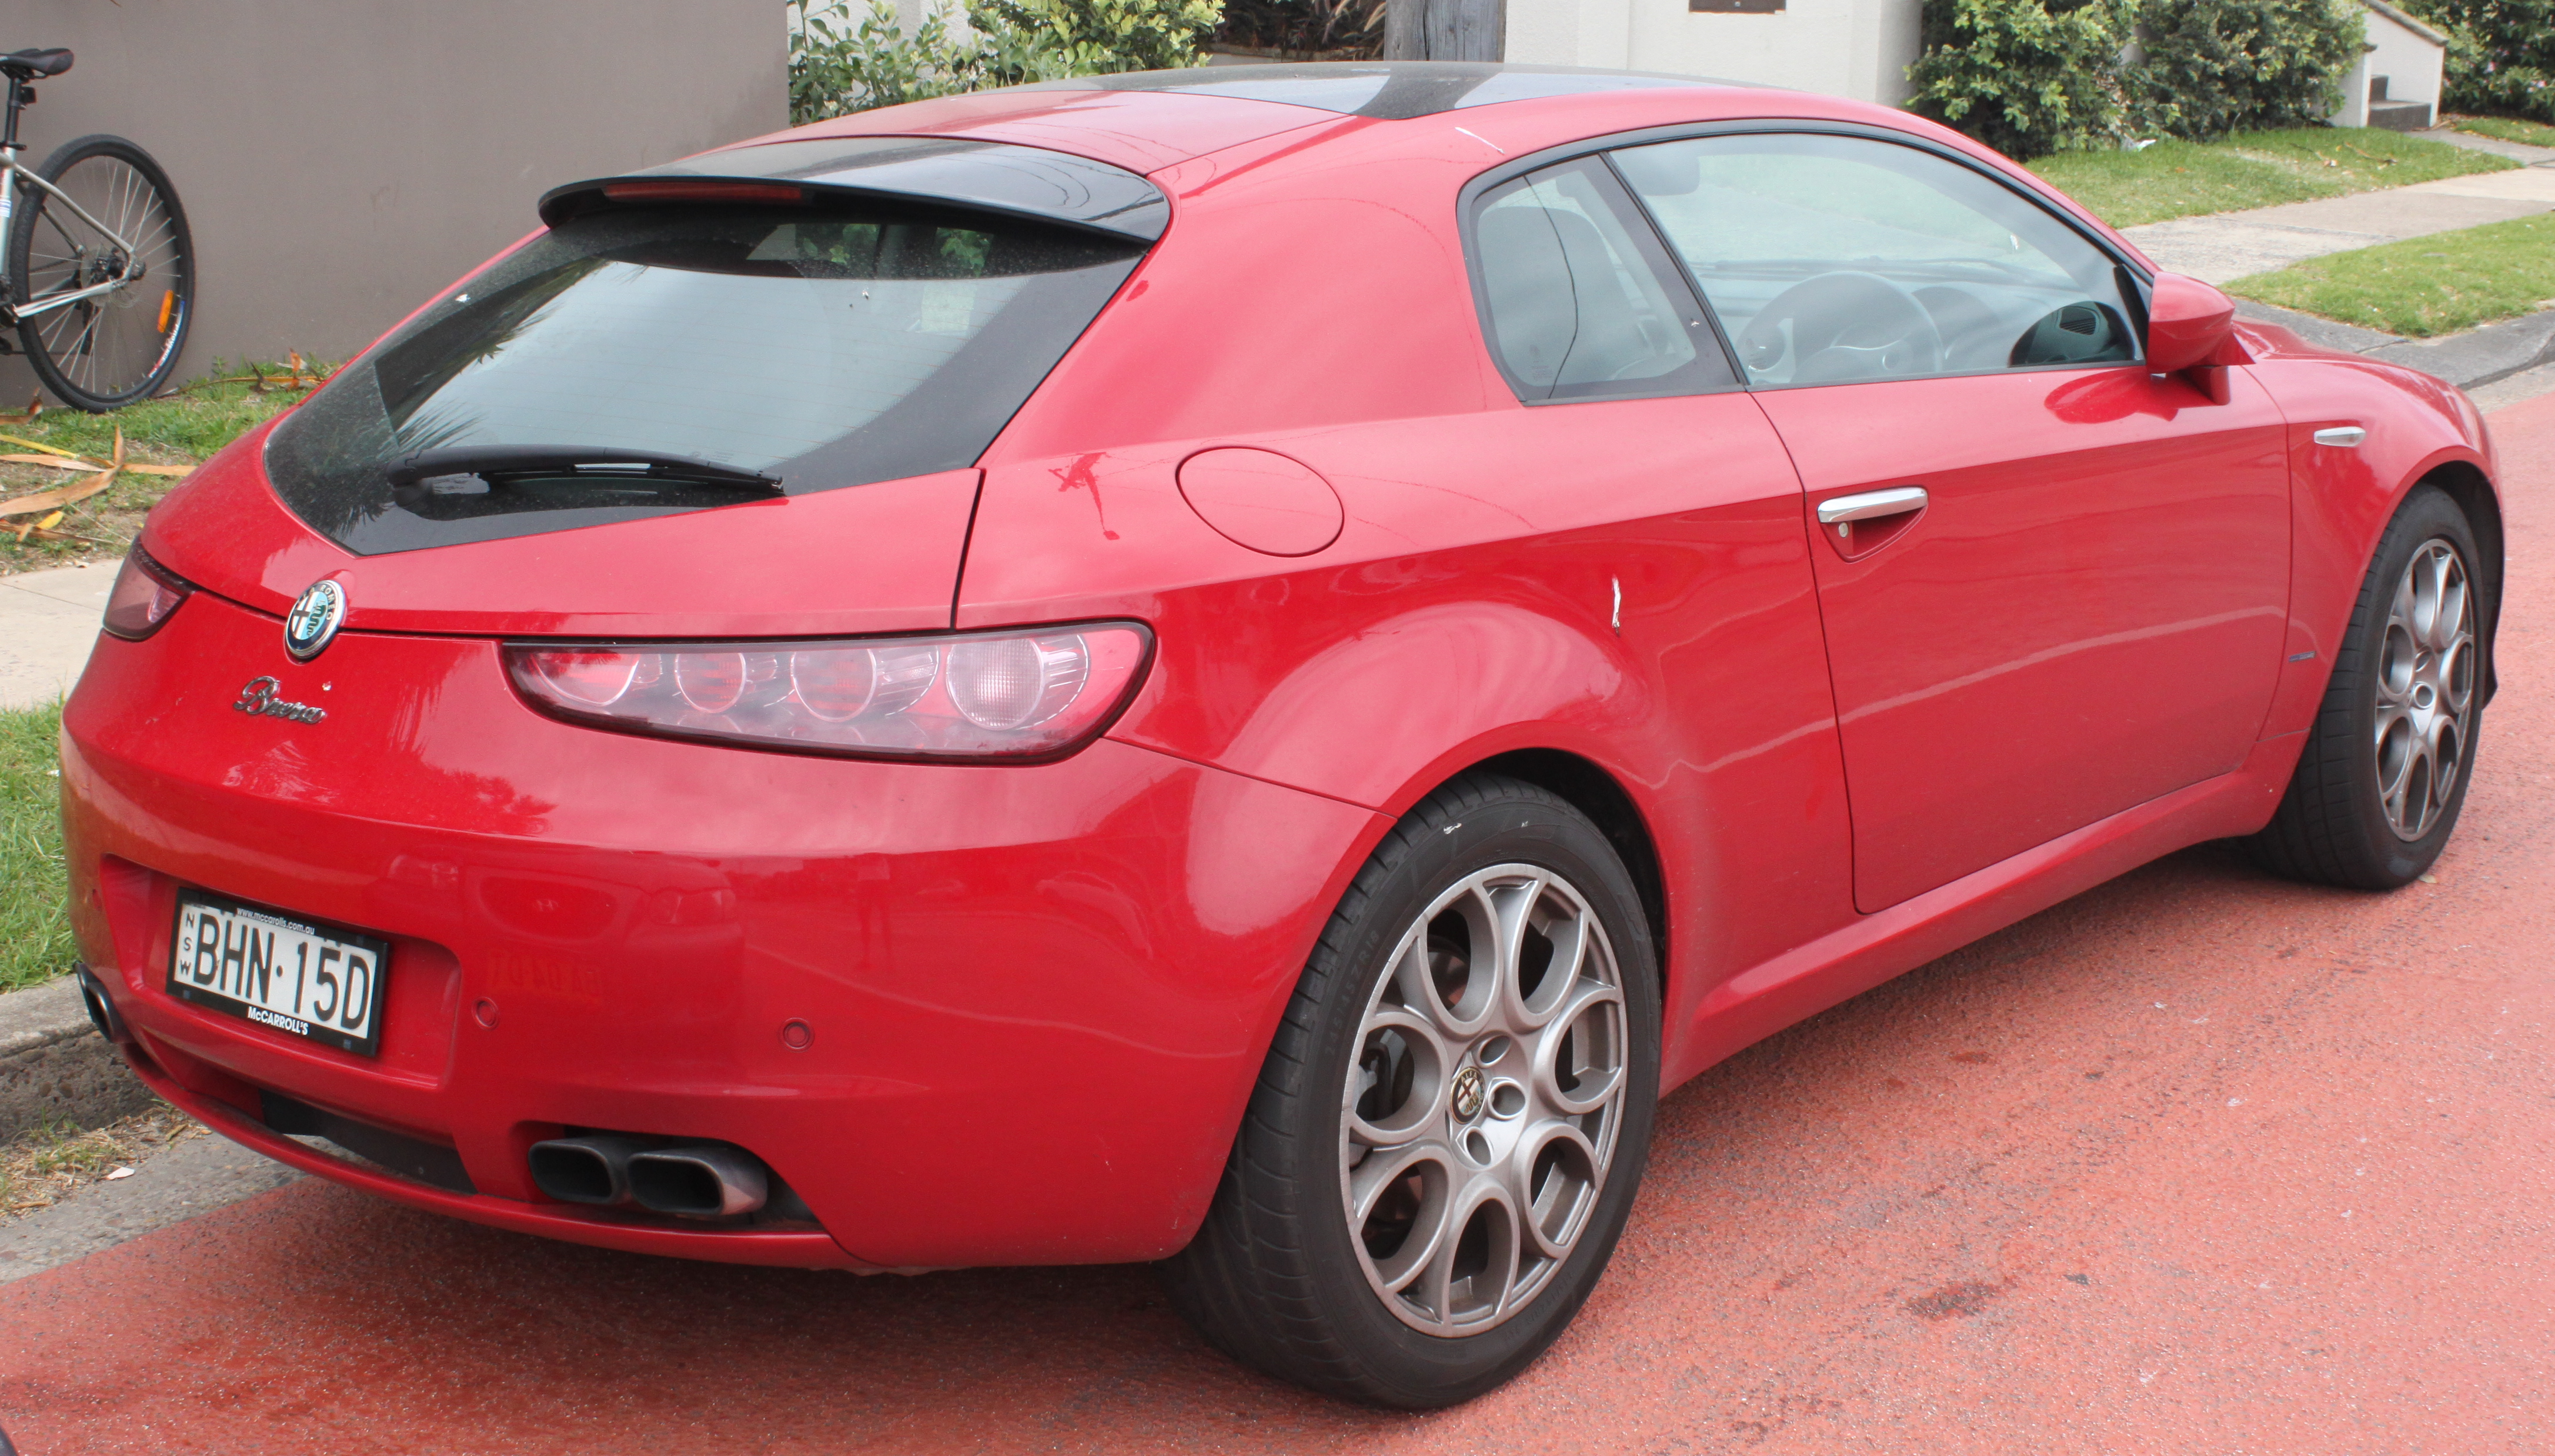 file 2007 alfa romeo brera v6 coupe 23359883921 jpg wikipedia. Black Bedroom Furniture Sets. Home Design Ideas